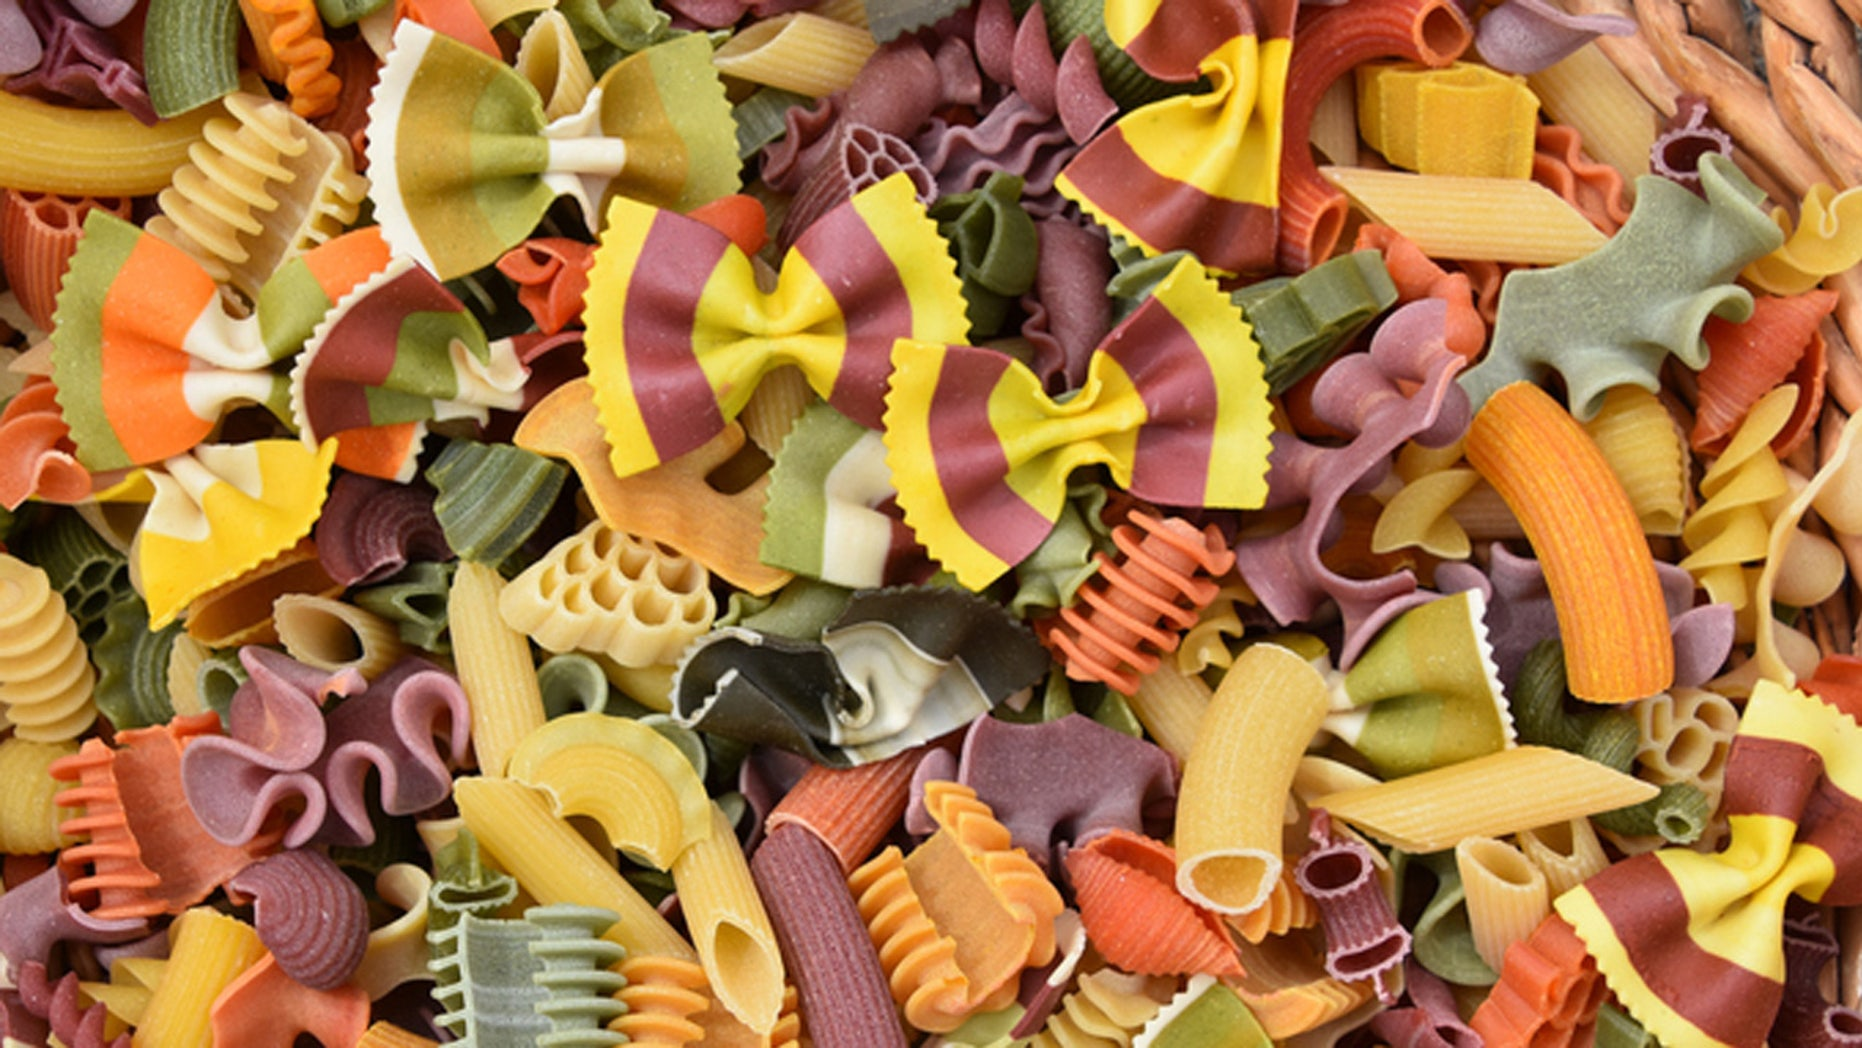 Shape-shifting pasta created by MIT researchers